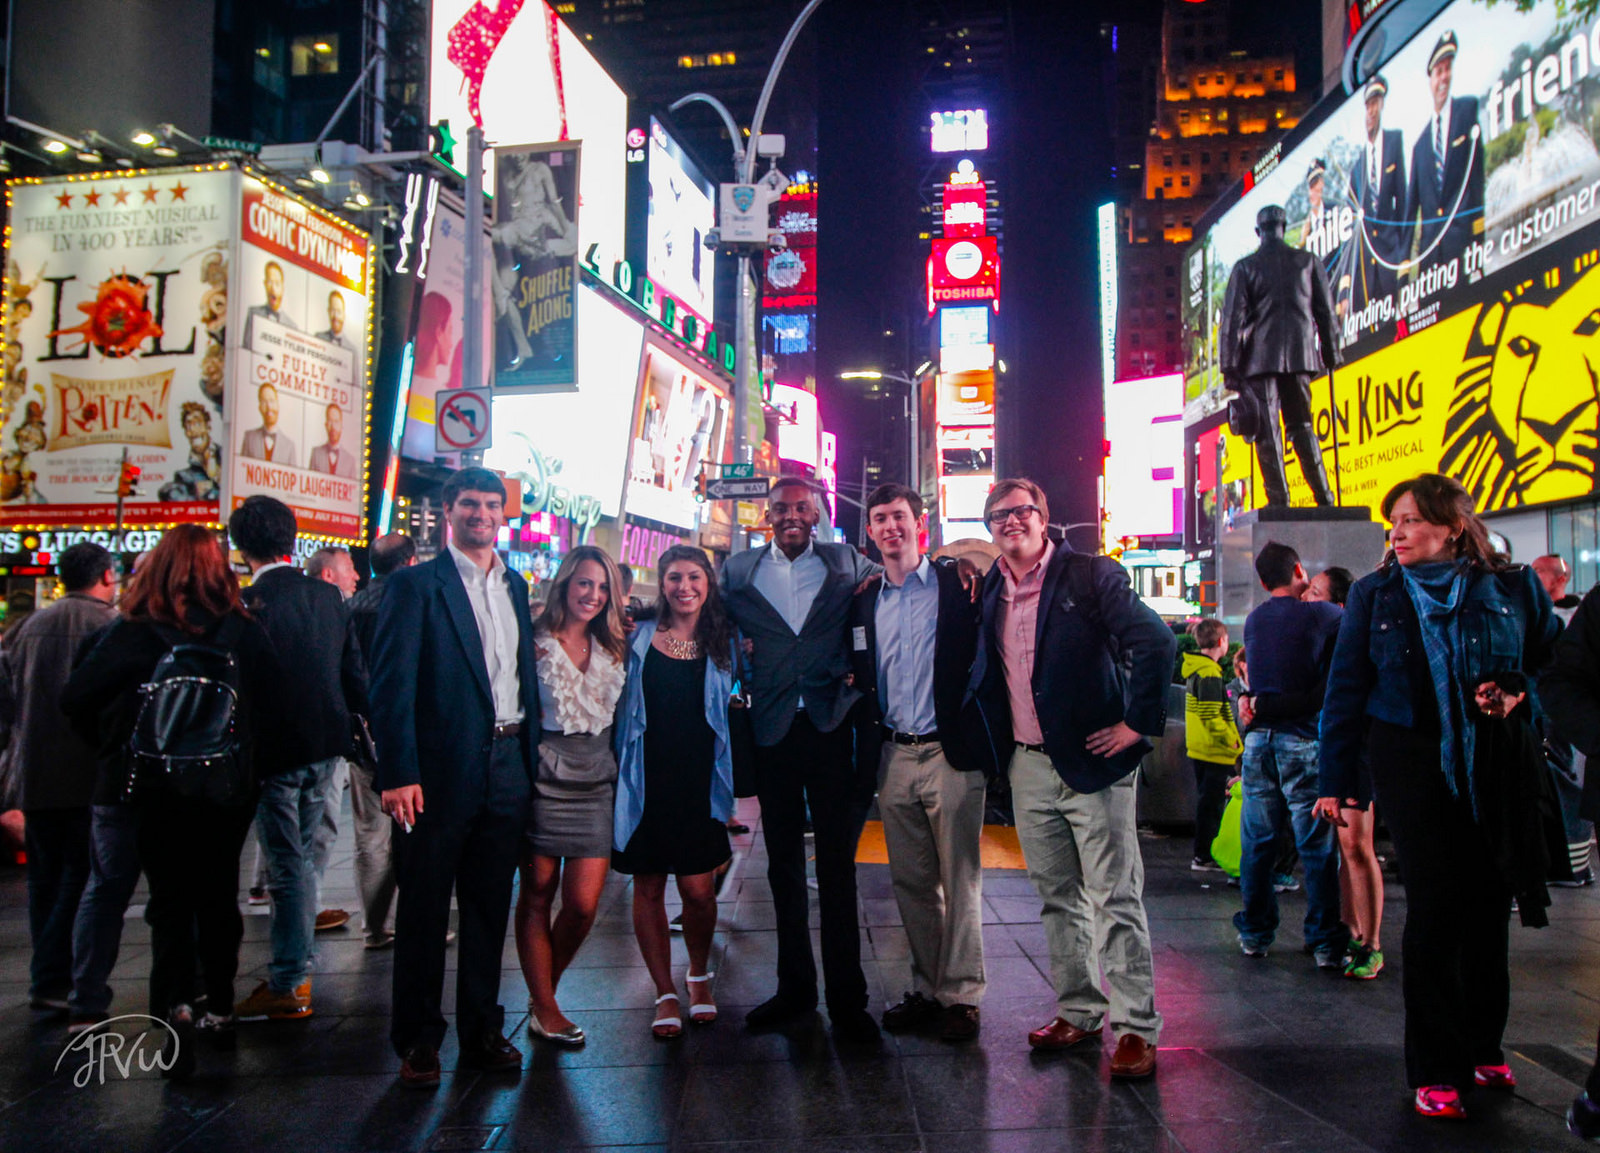 ADPR NYC Maymester Program